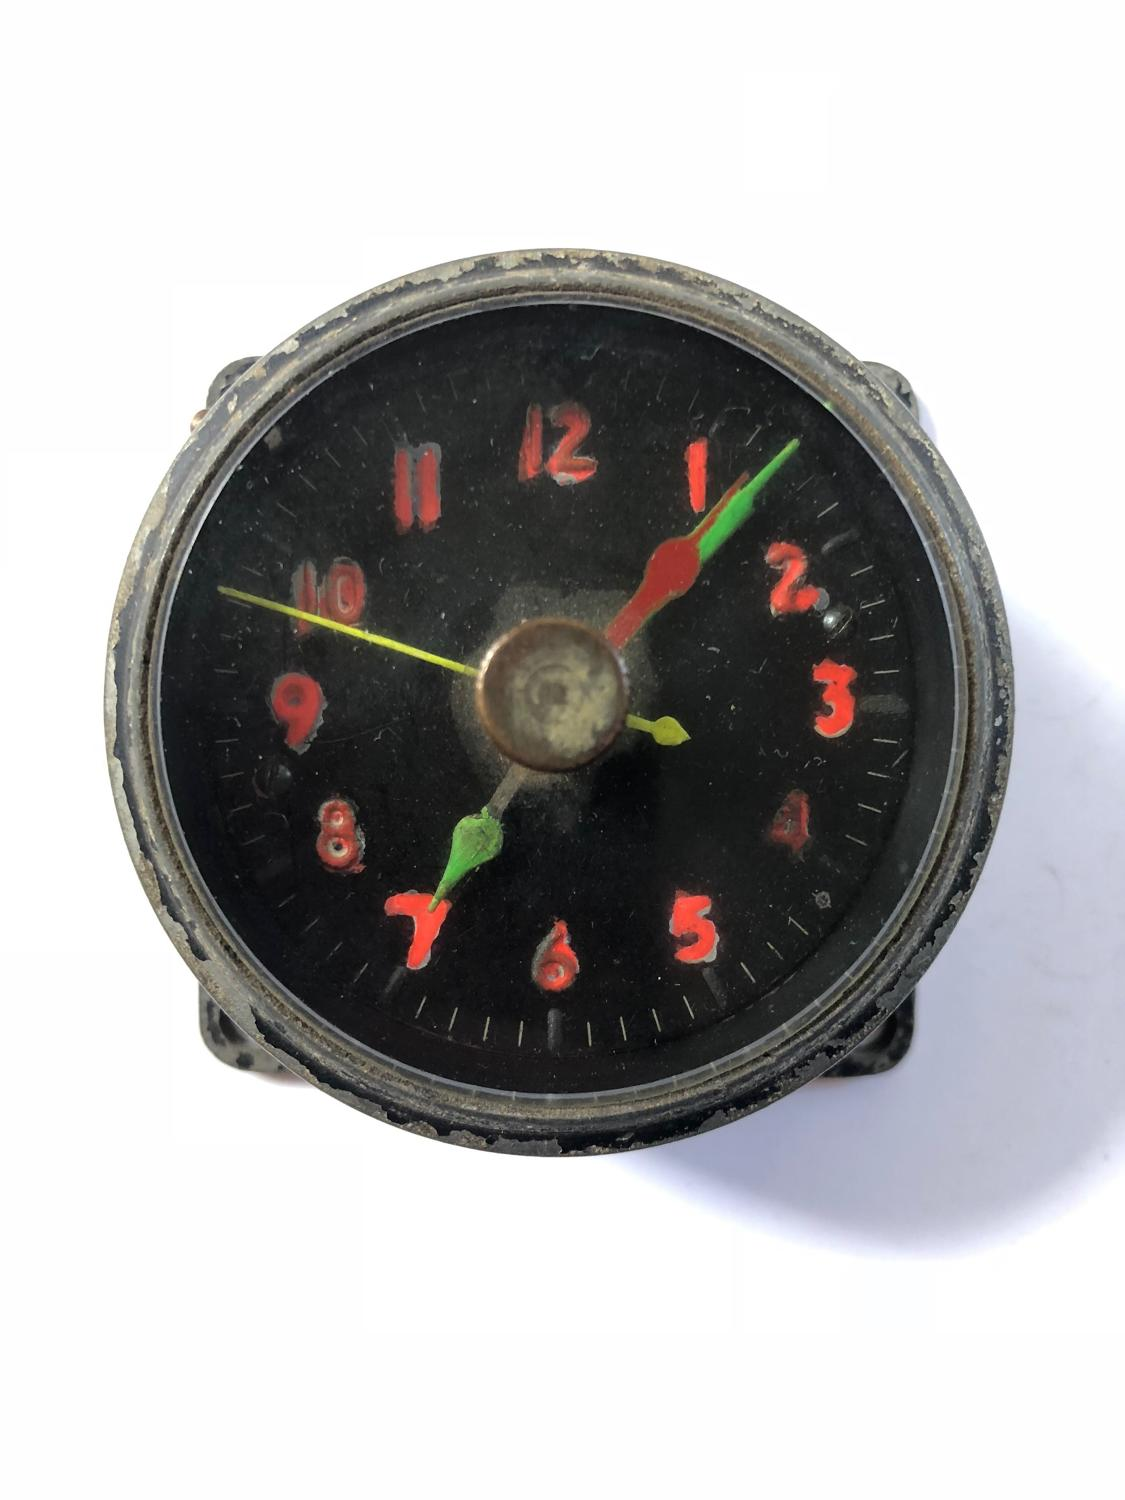 WW2 RAF Aircraft Cockpit Clock.